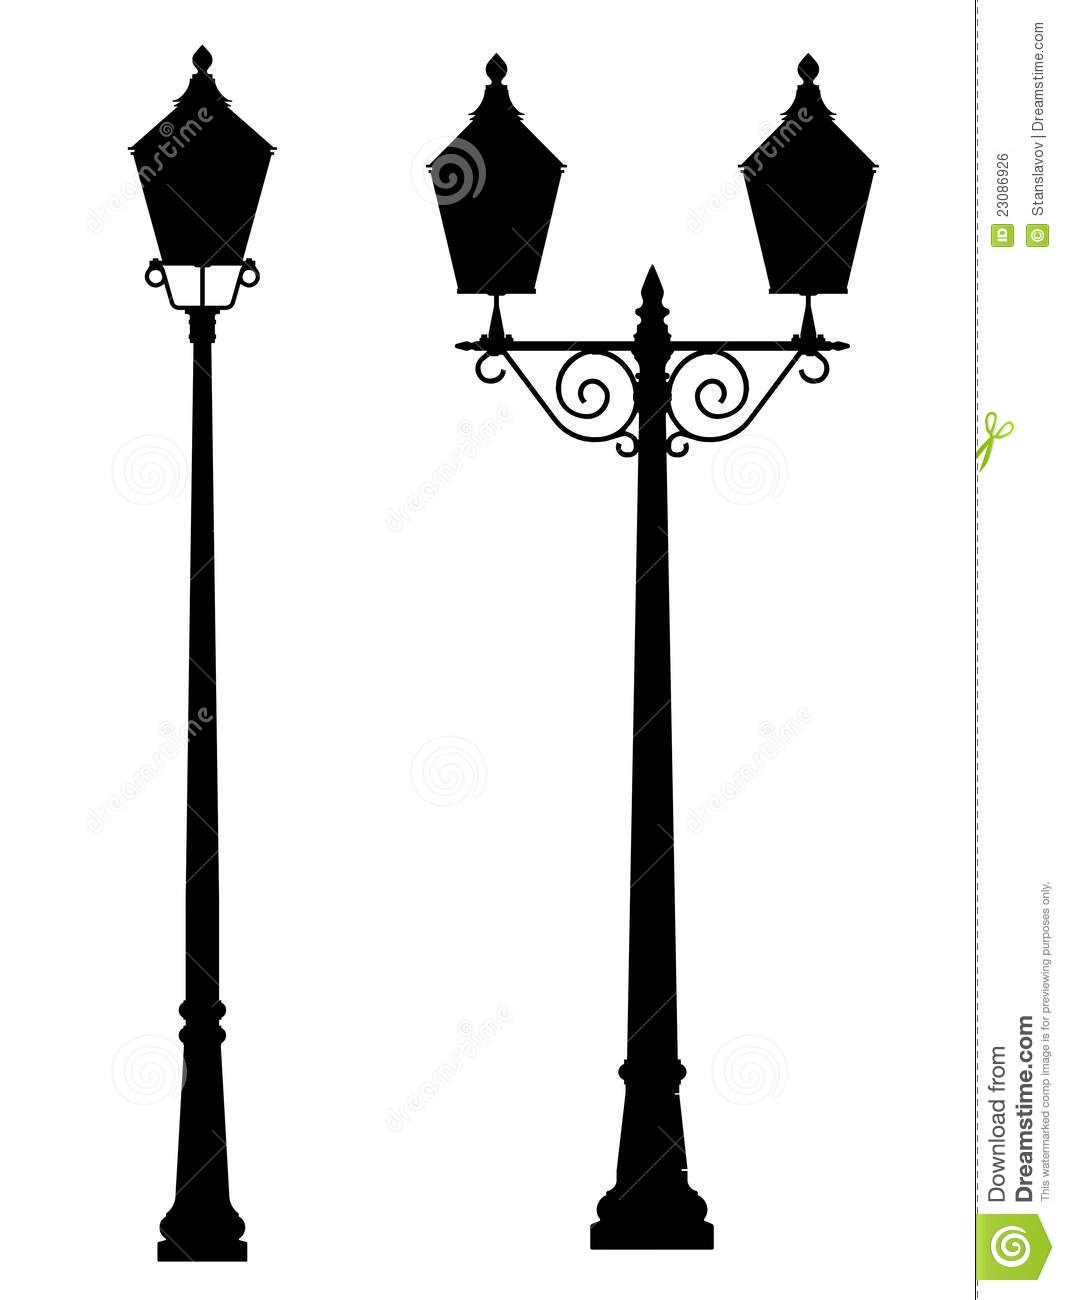 Street Lamp Light Outline Silhouette Stock Illustration